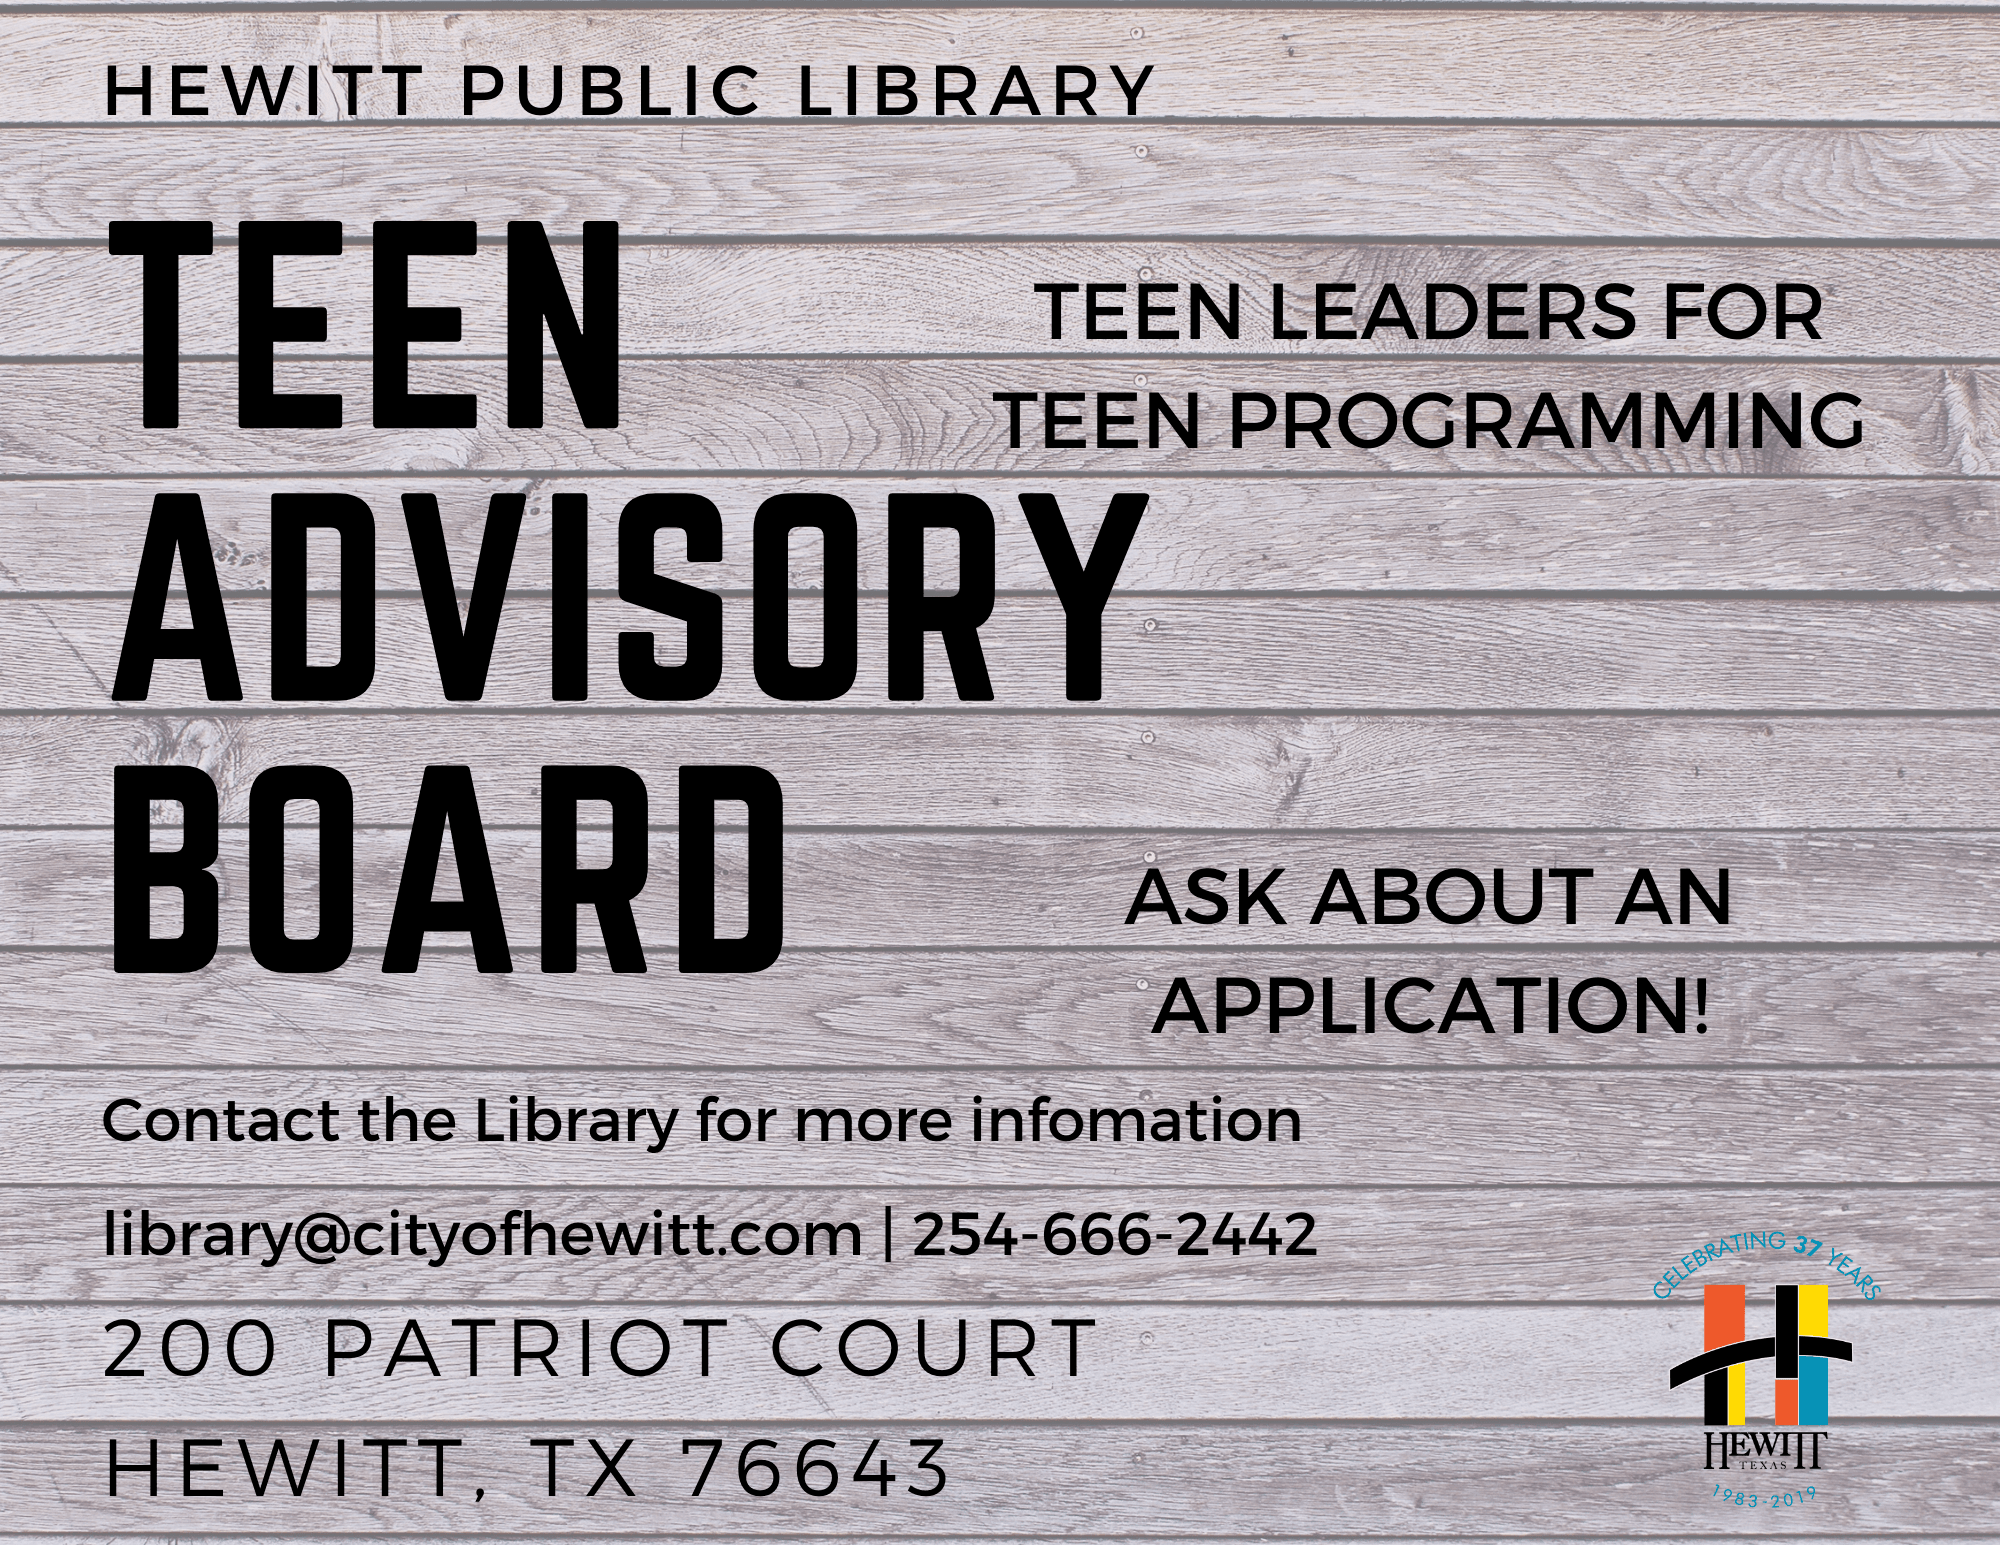 Teen Advisory Board - Copy